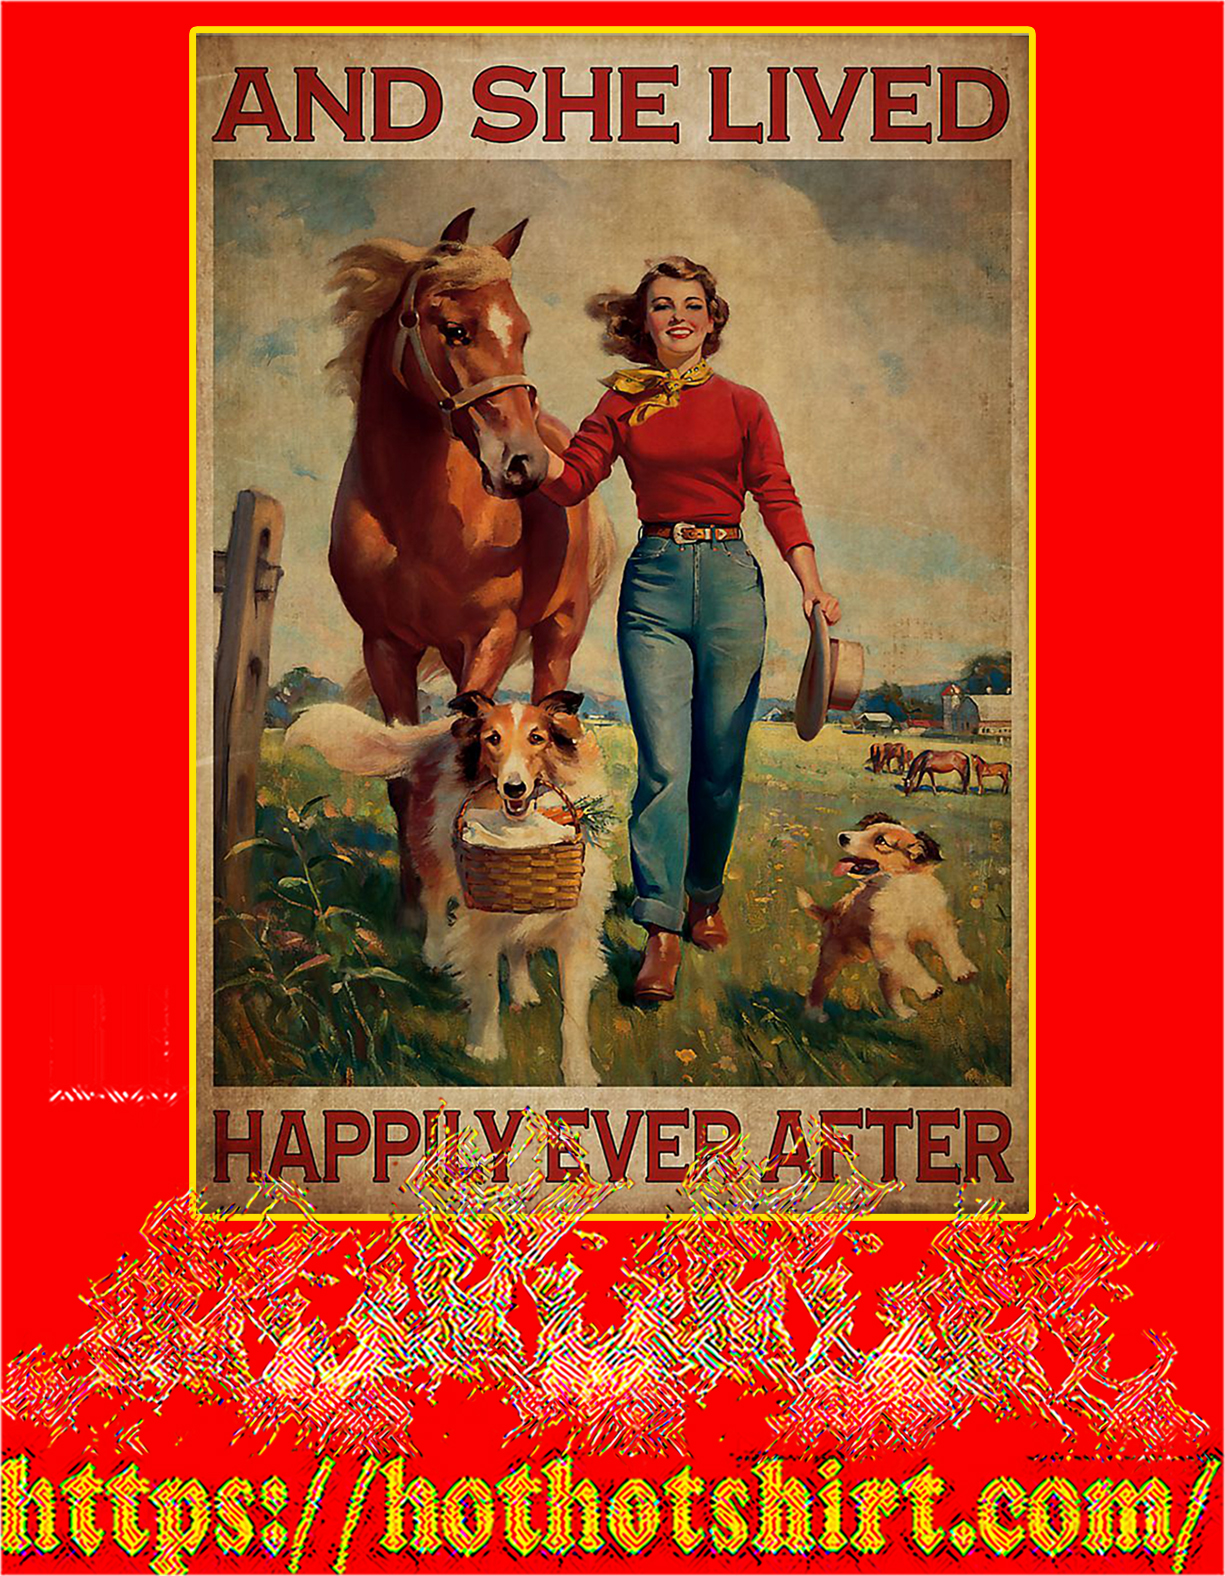 Girl with horse and dog lived happily ever after poster - A4